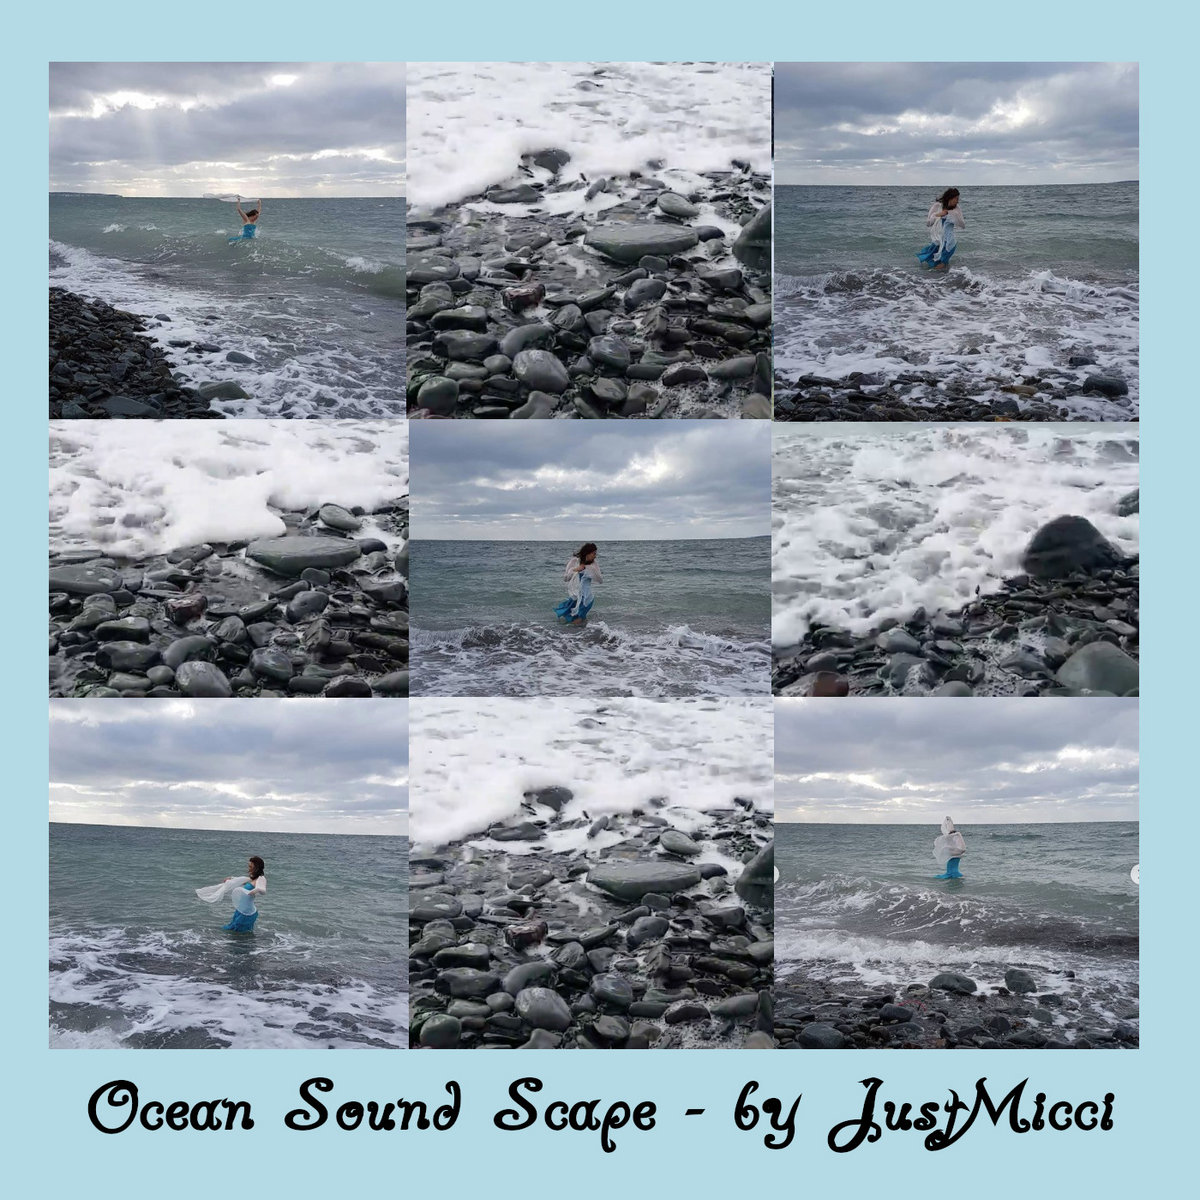 Ocean Sound Scape by Just Micci